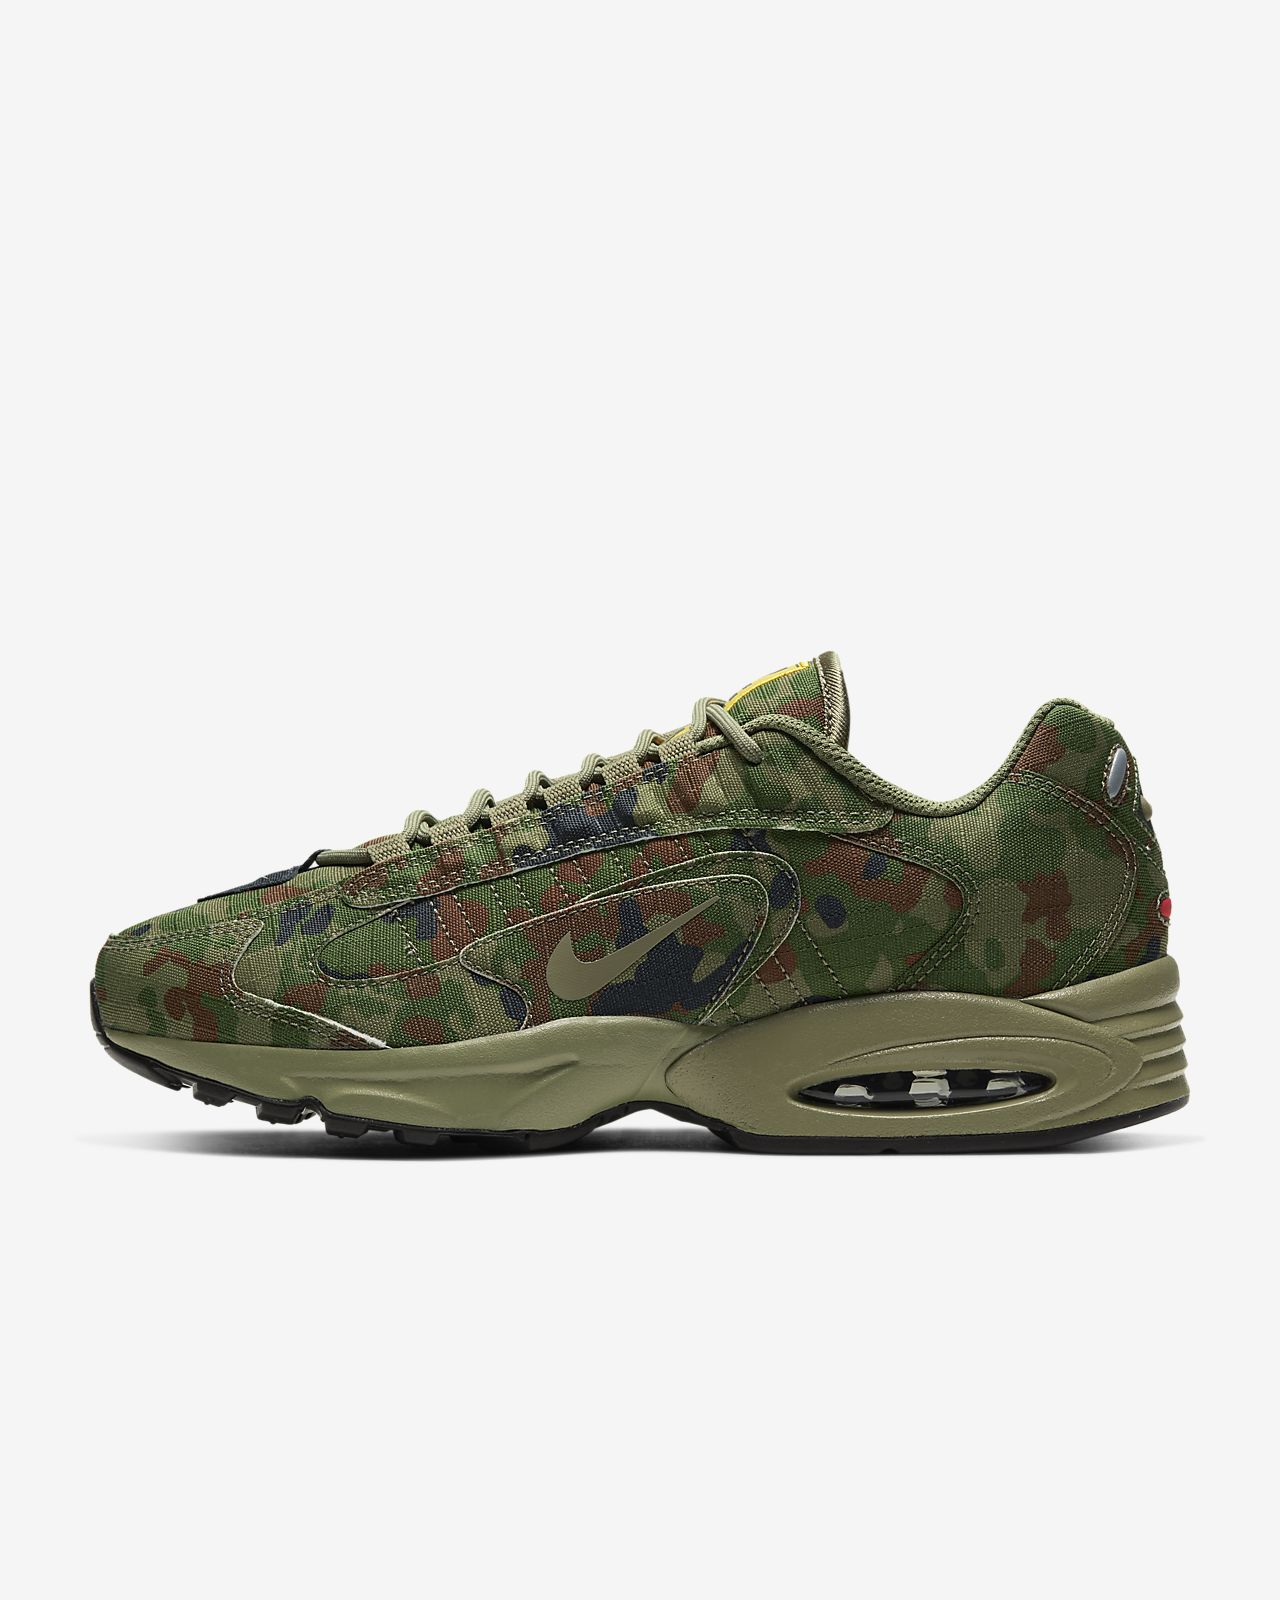 Nike Air Max Triax 96 SP Men's Shoe